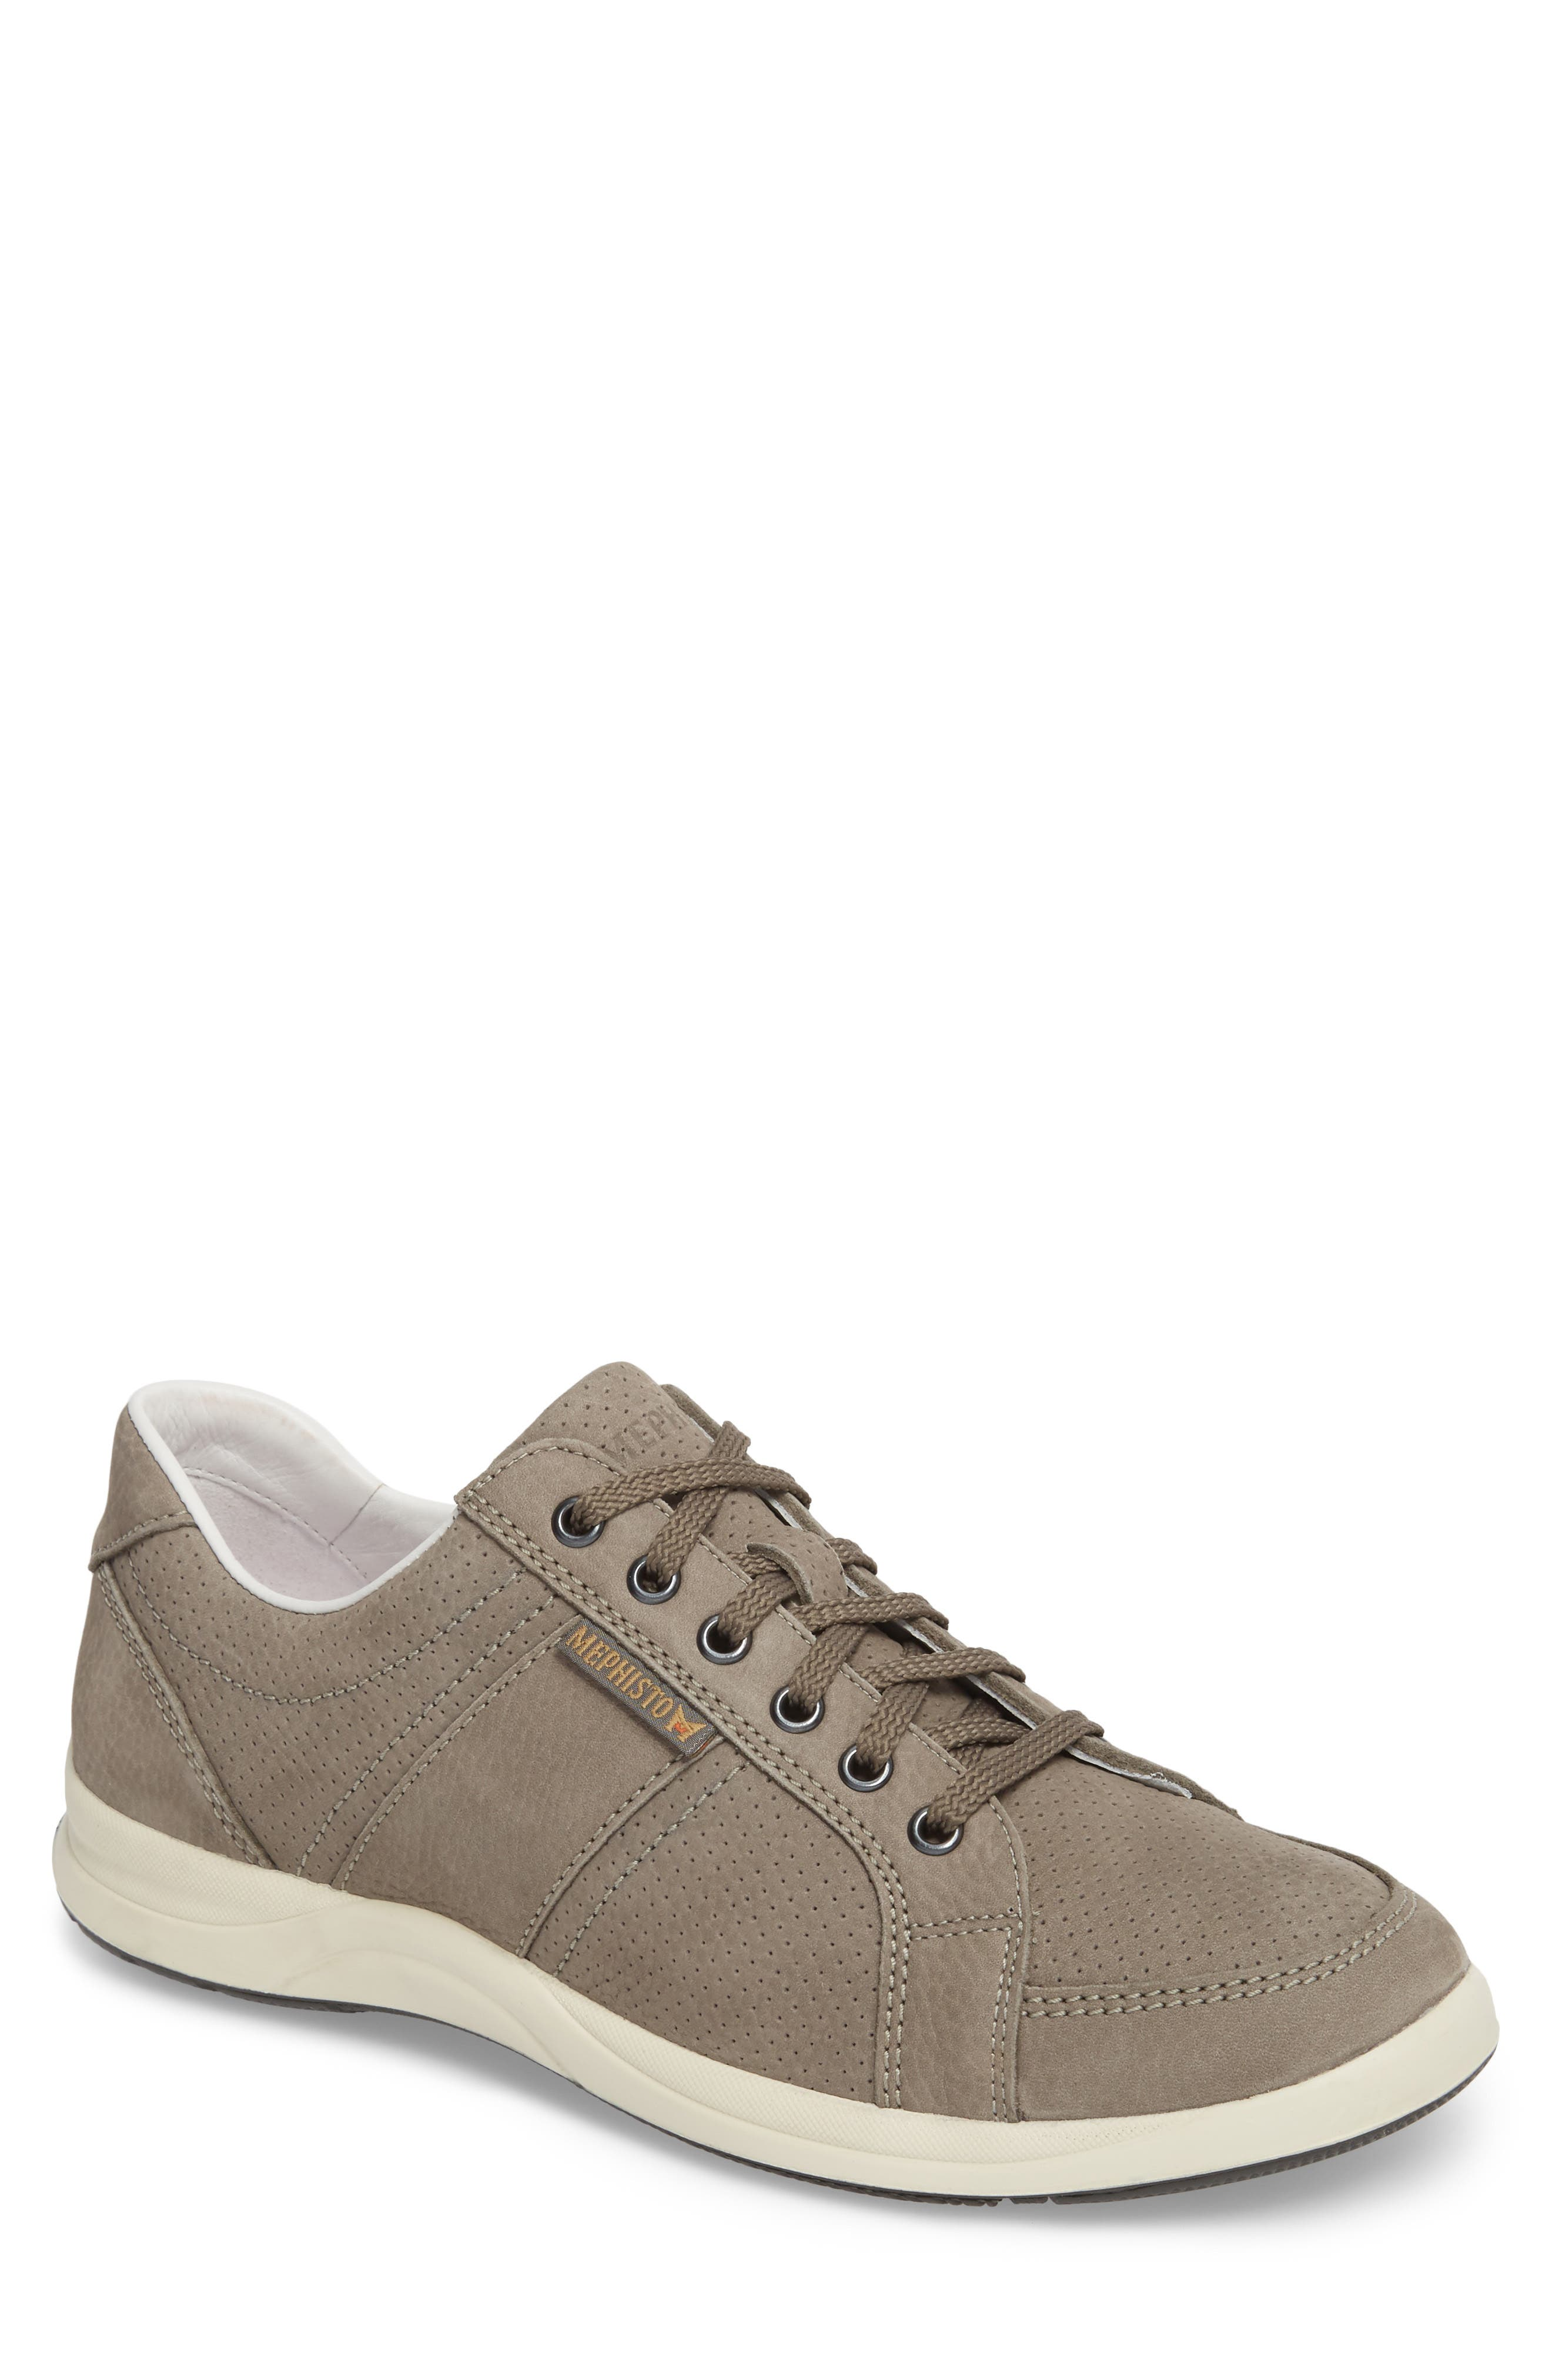 MEPHISTO 'Hero' Perforated Sneaker, Main, color, GREY LEATHER